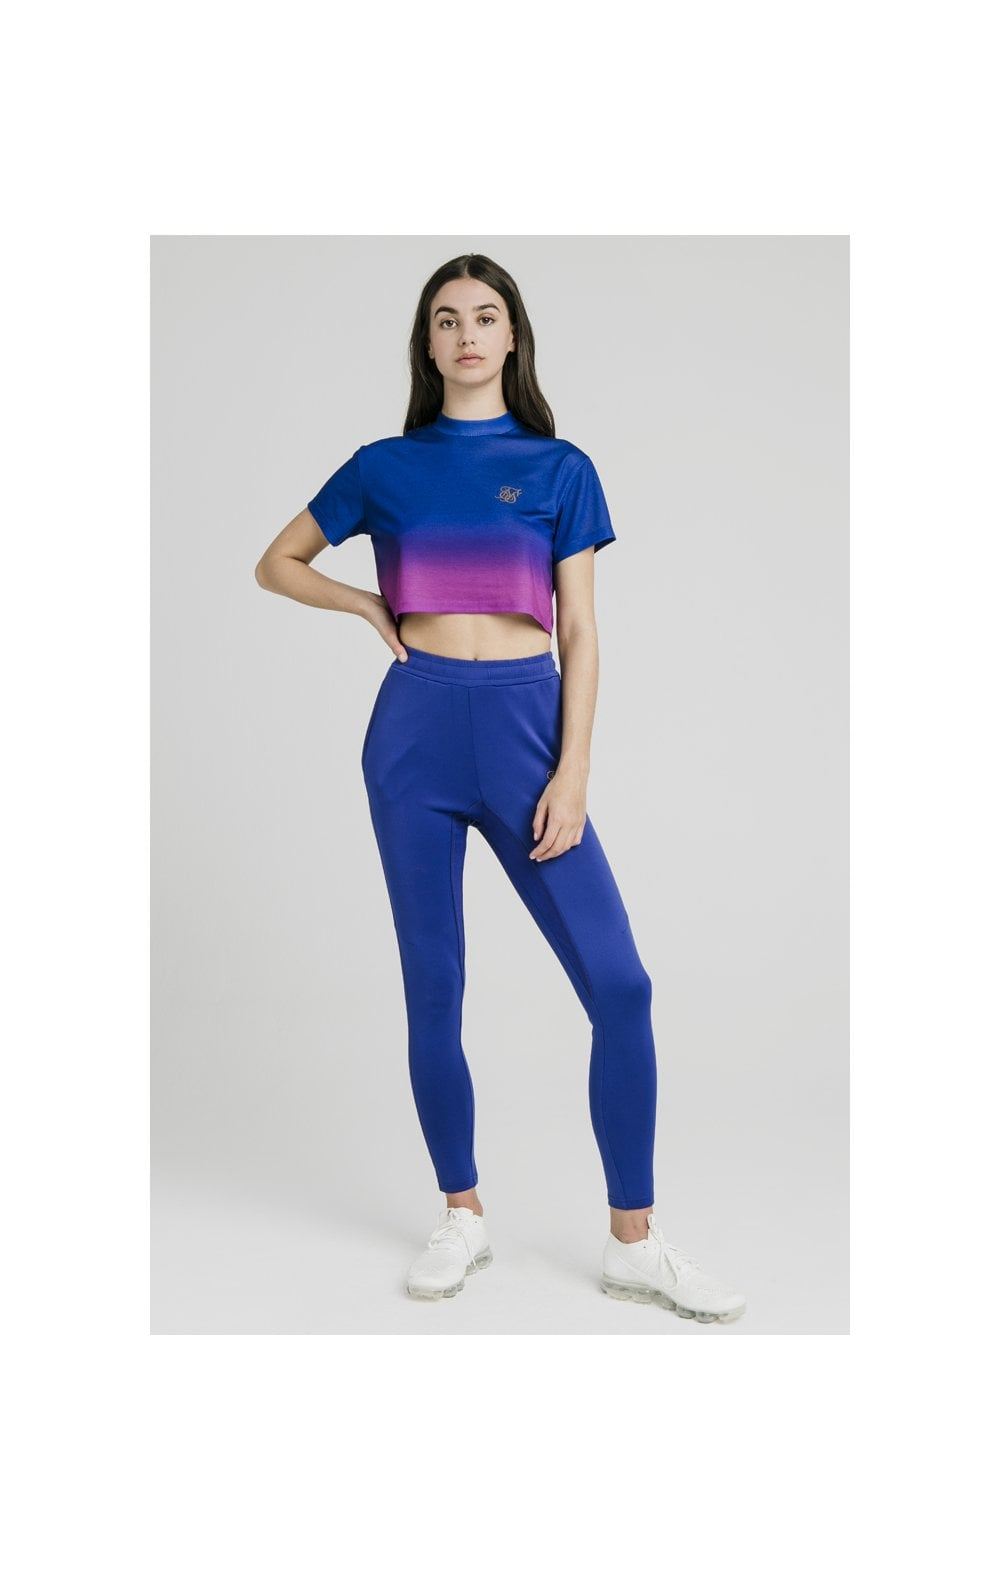 Laden Sie das Bild in den Galerie-Viewer, SikSilk T-Shirt Kurzarm Blass - Blau und Rosa (3)